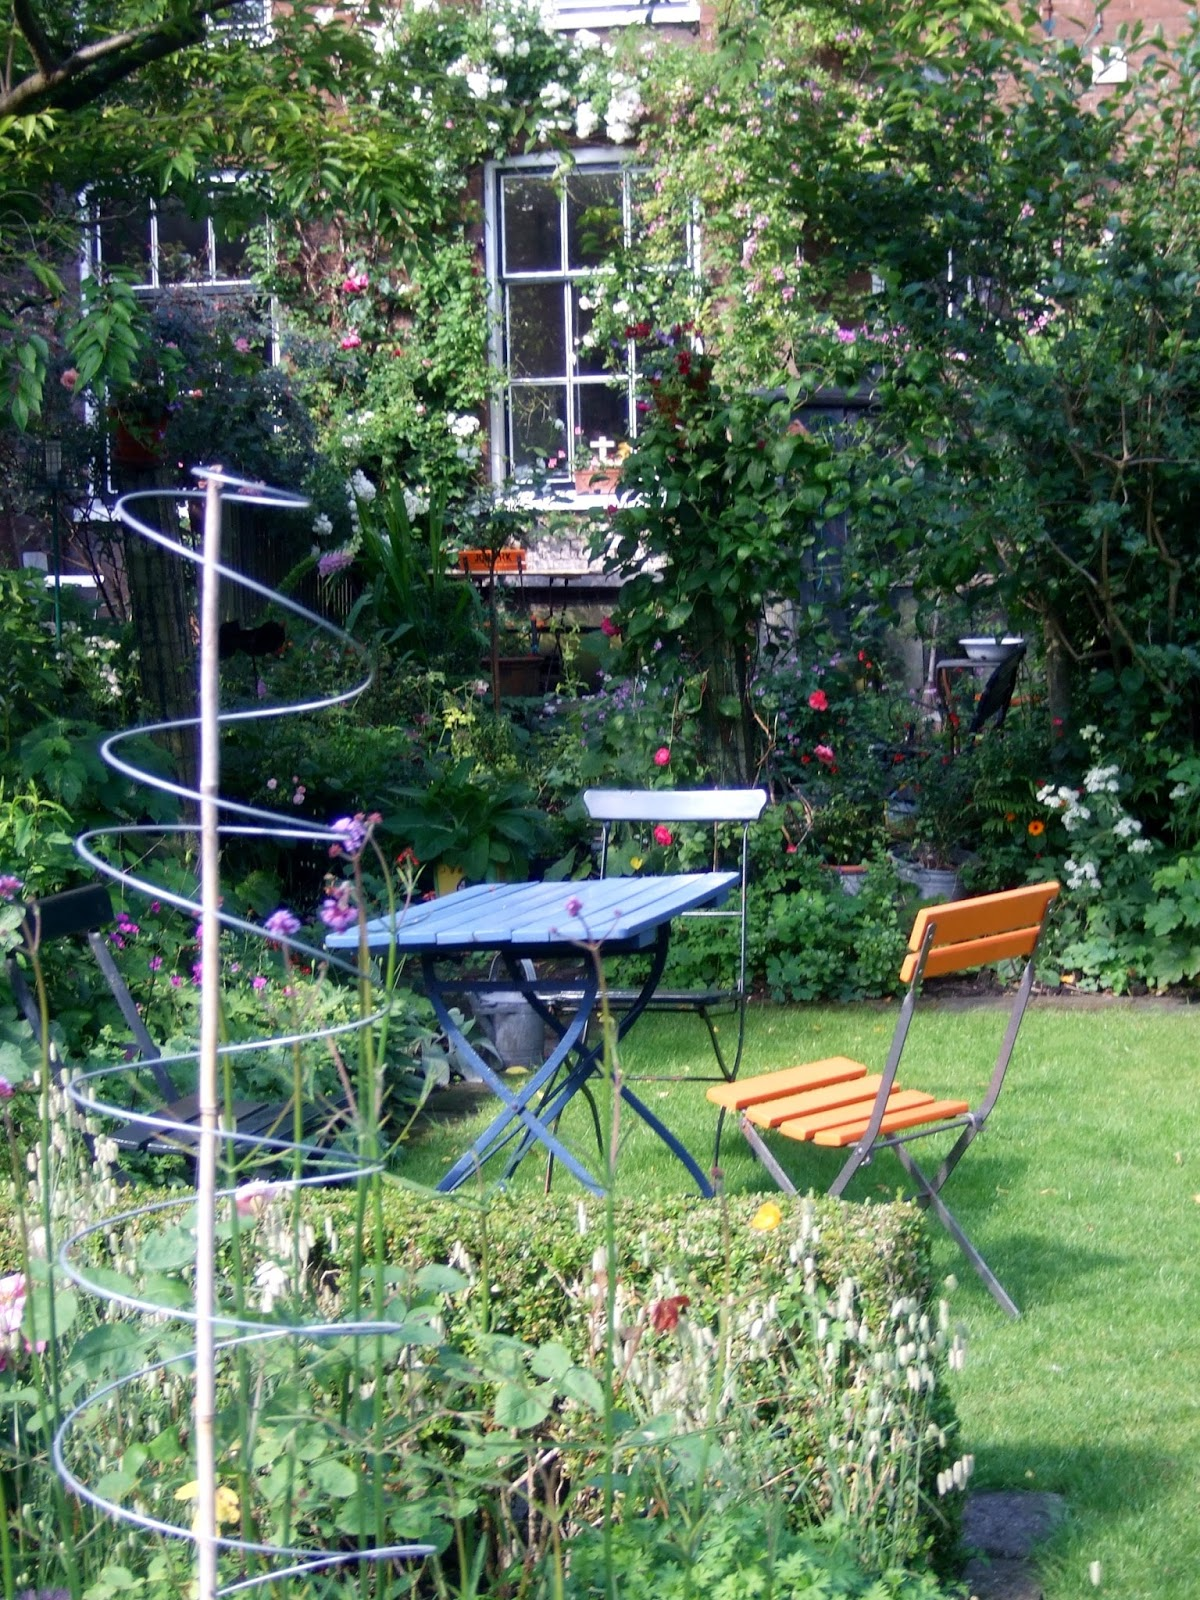 Travel in a garden to answer your questions cilia for Garden design netherlands